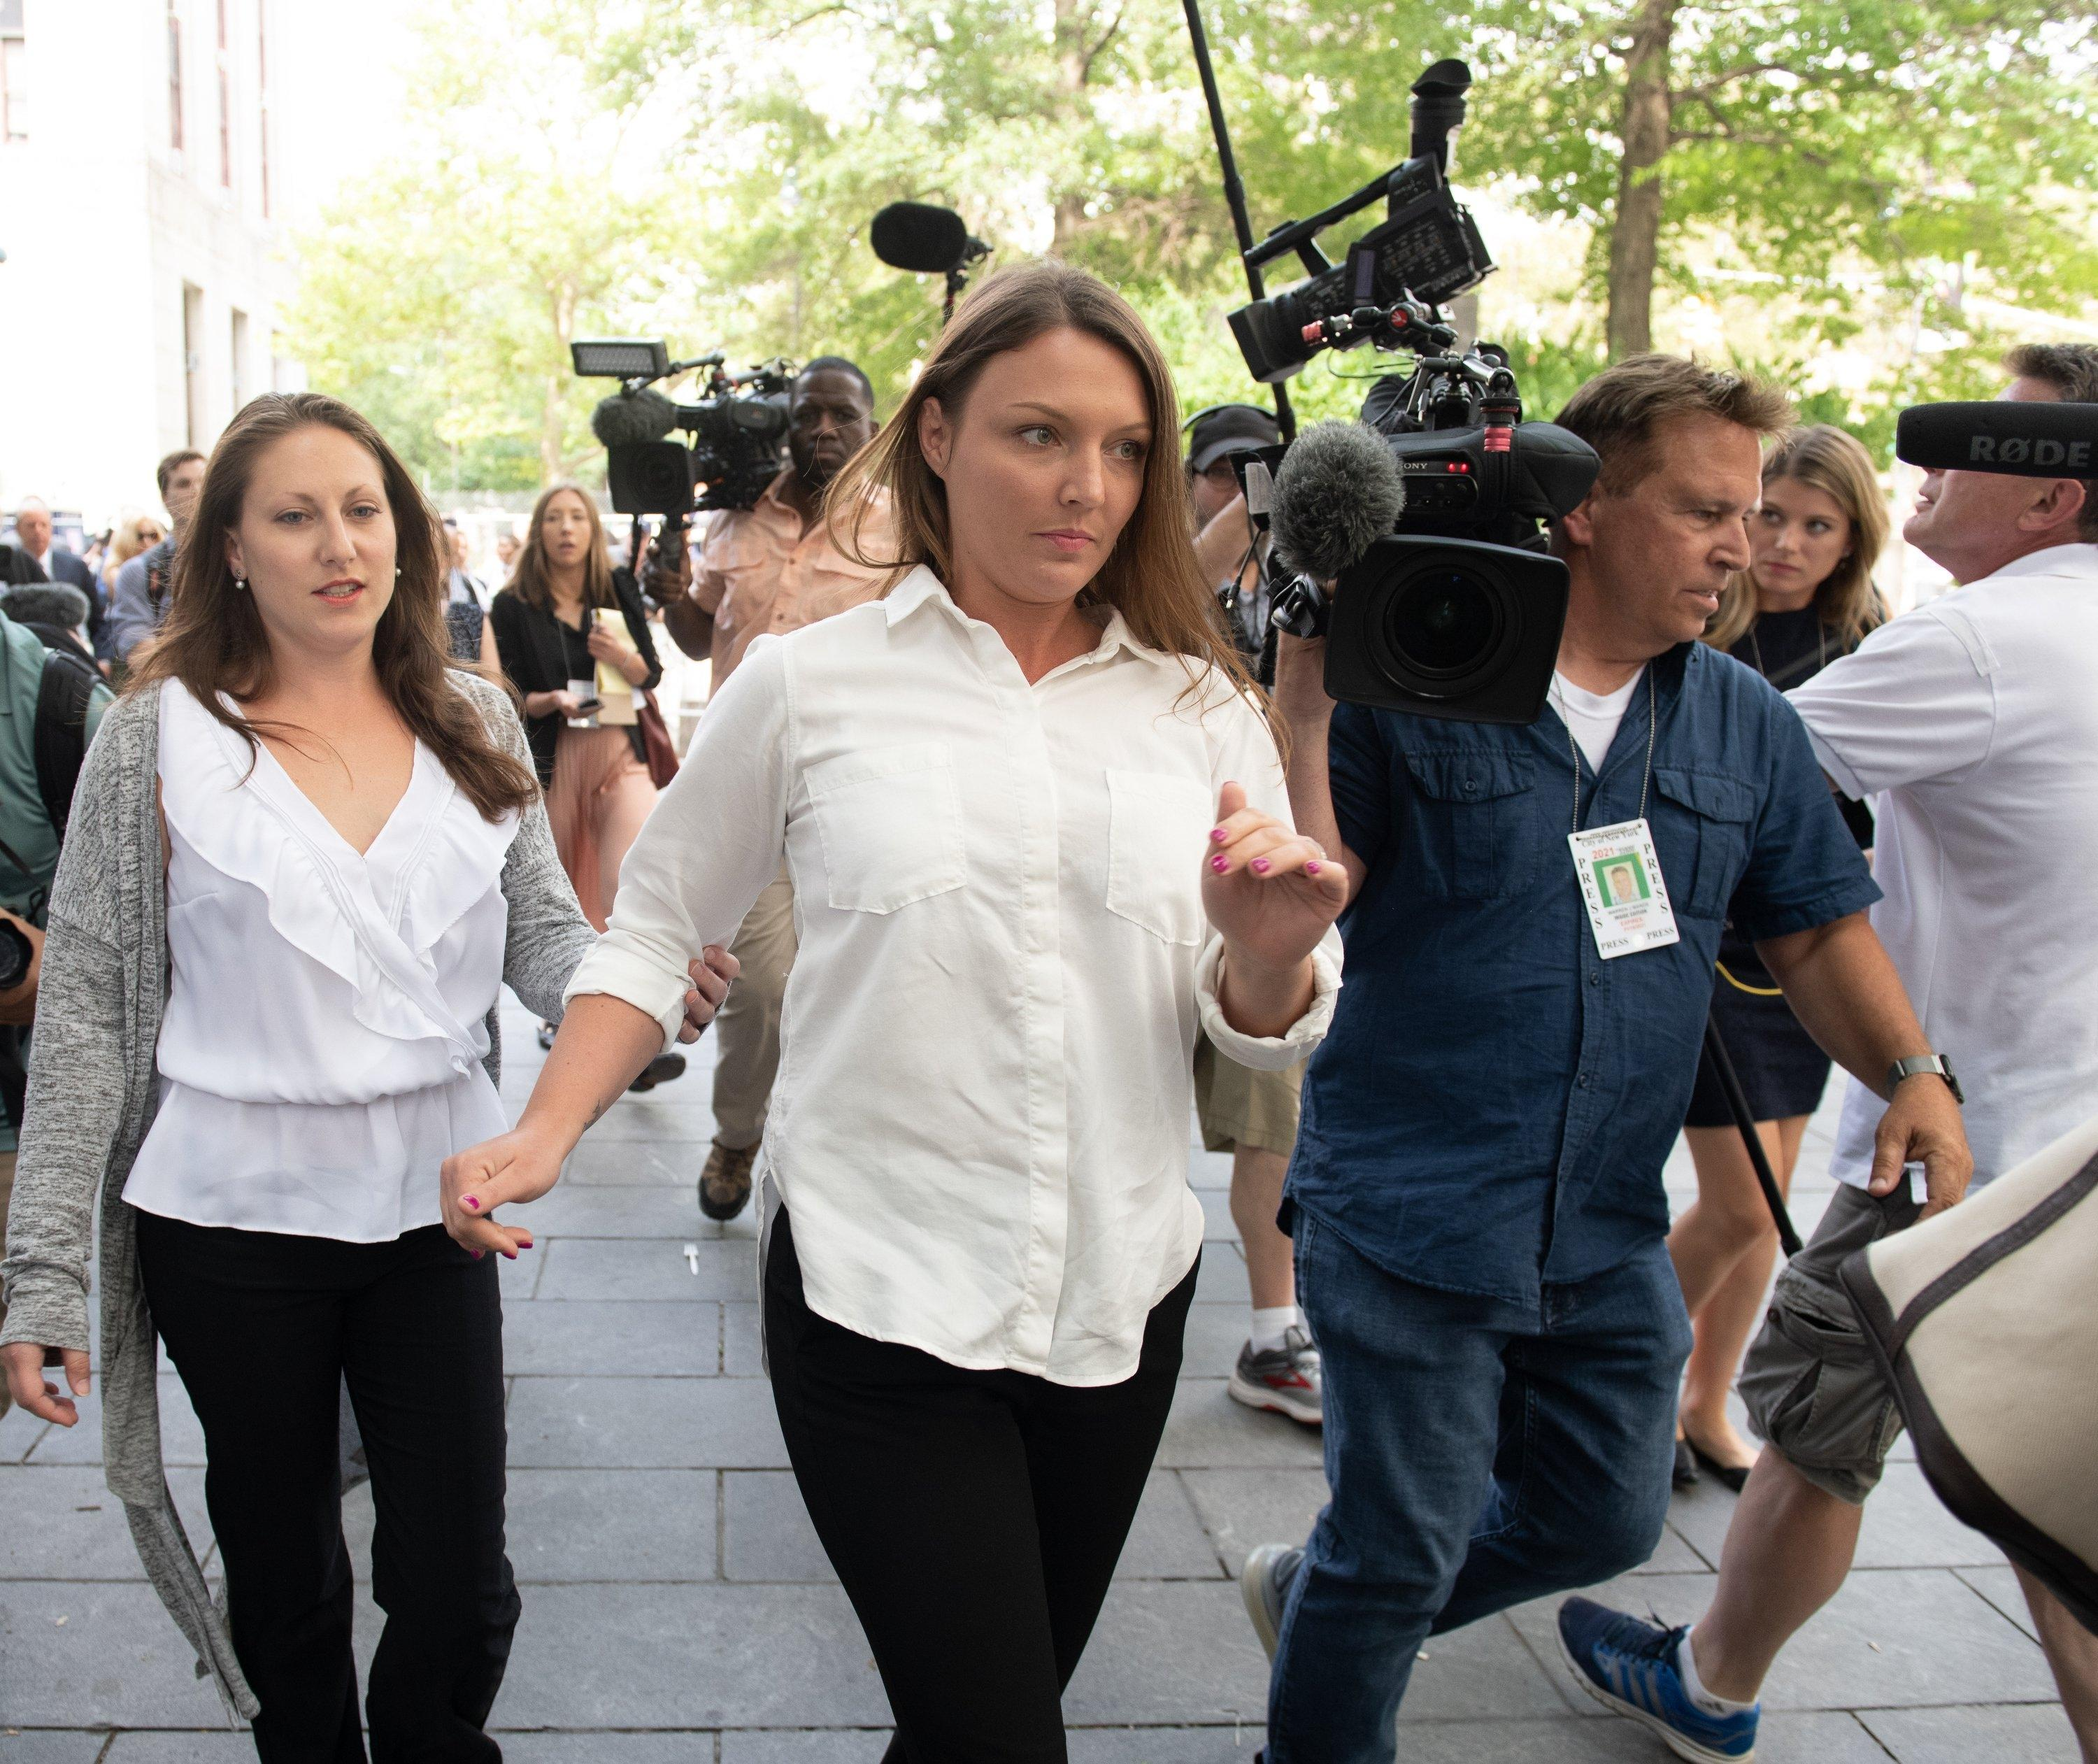 Victims of Jeffrey Epstein from the Miami criminal case, Michelle Licata, left, and Courtney Wild, leave a New York City federal courthouse on July 8, 2019.